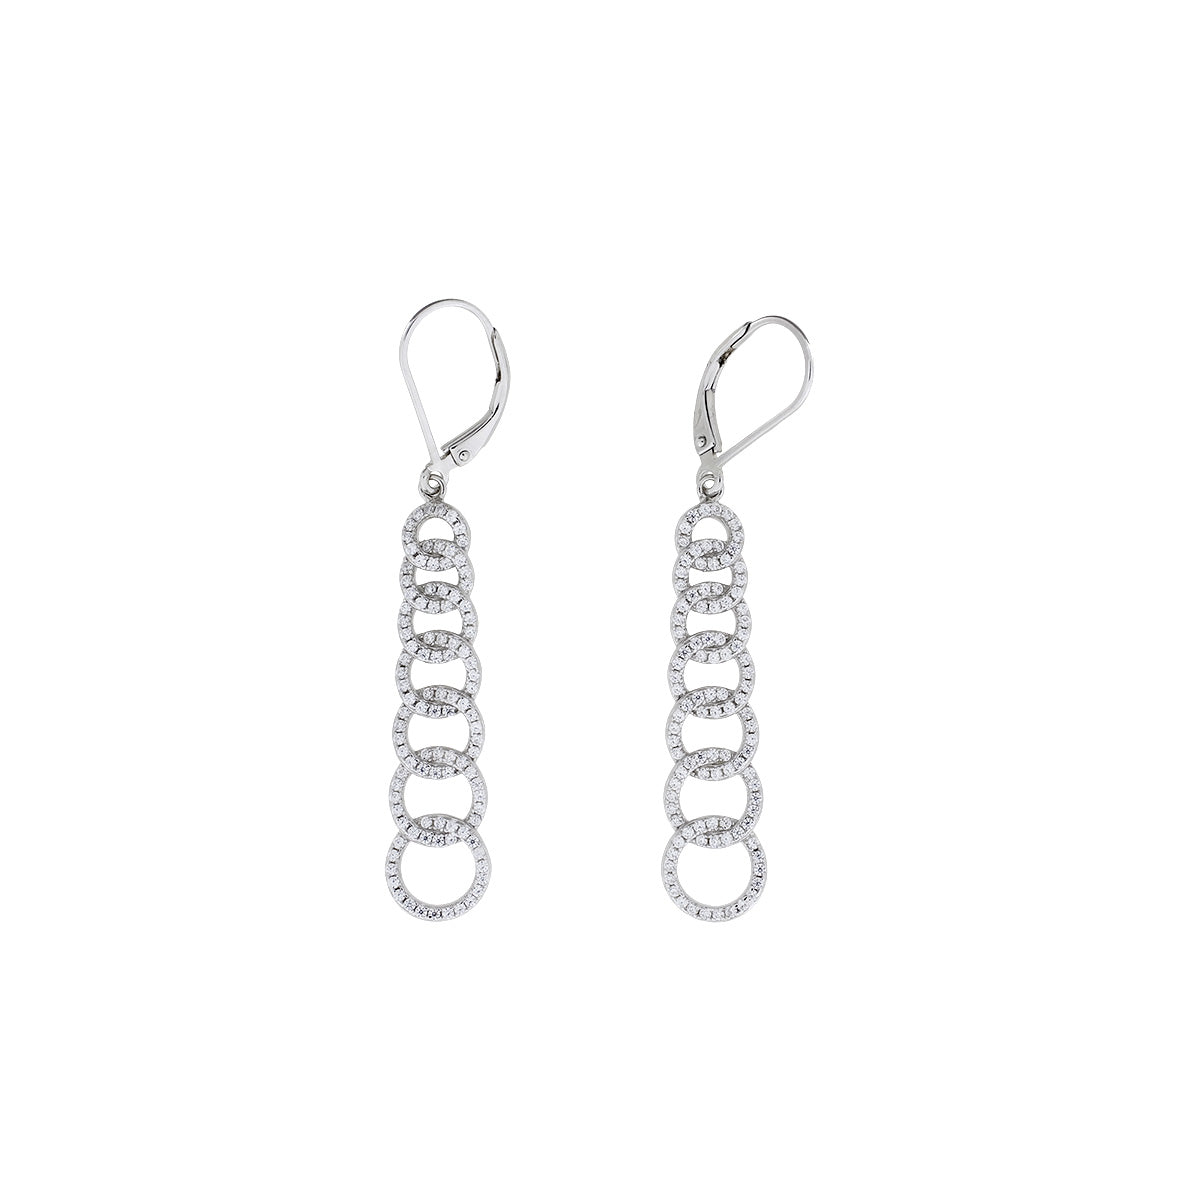 Pavé Seven Interlocking Circles Drop Earrings